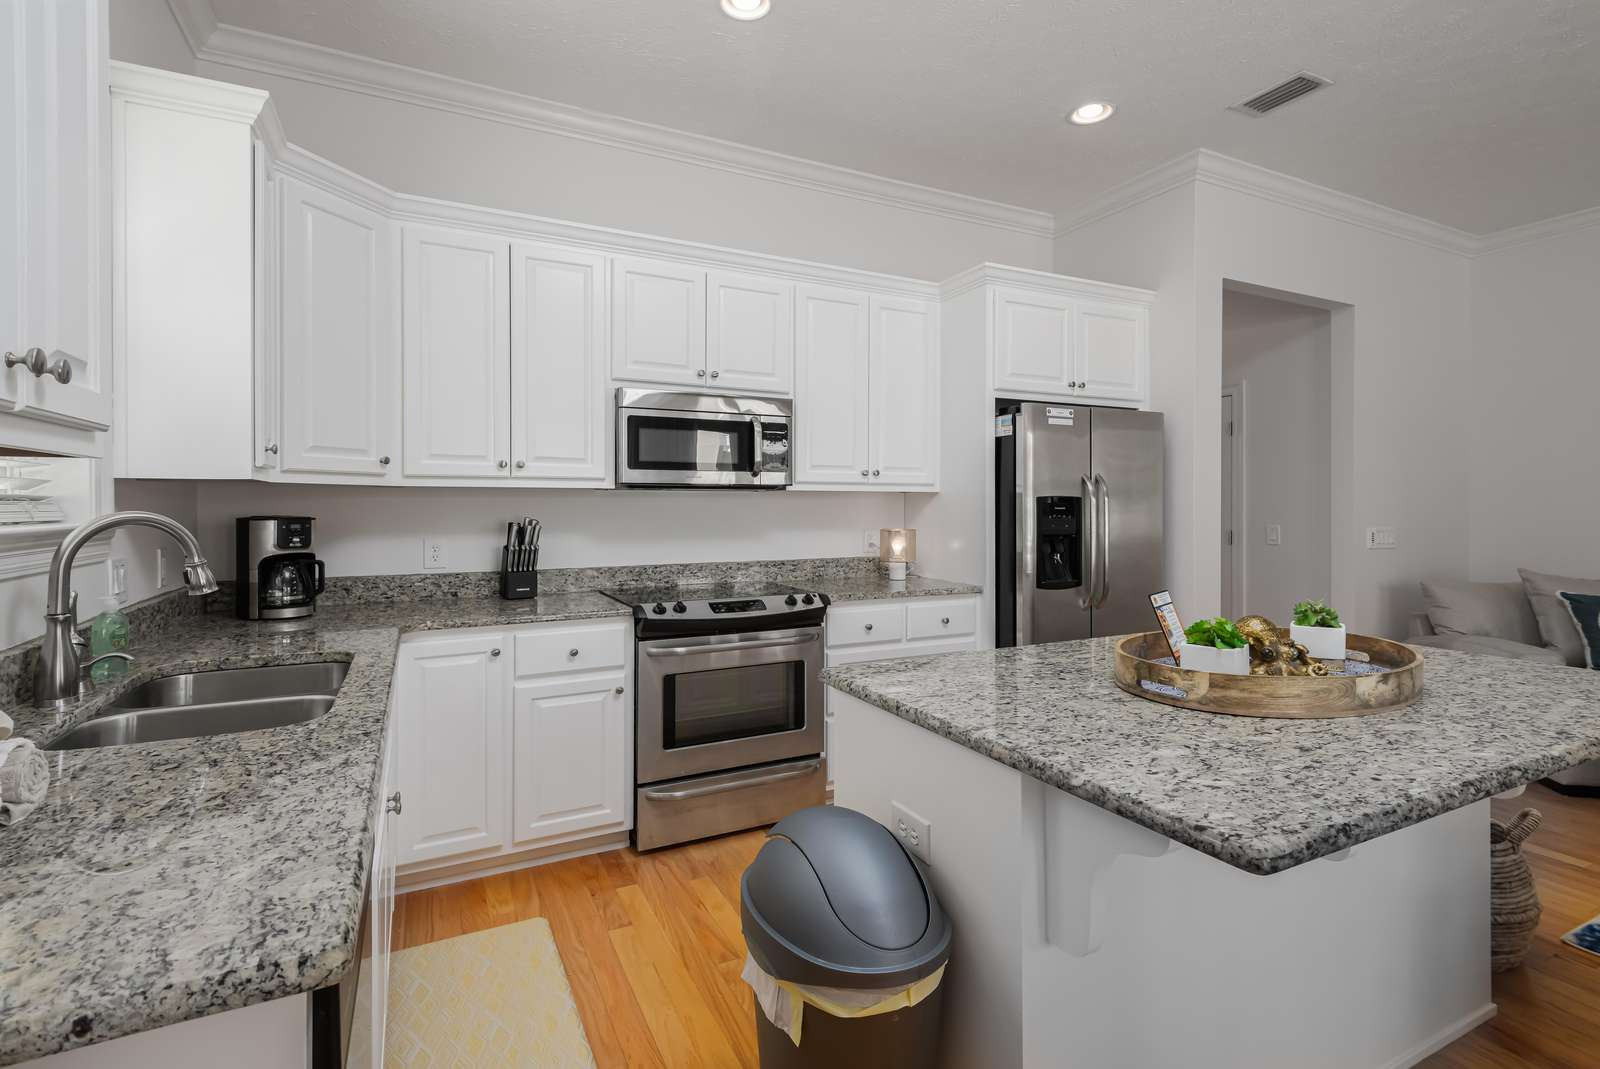 Nicely equipped kitchen with lots of storage!